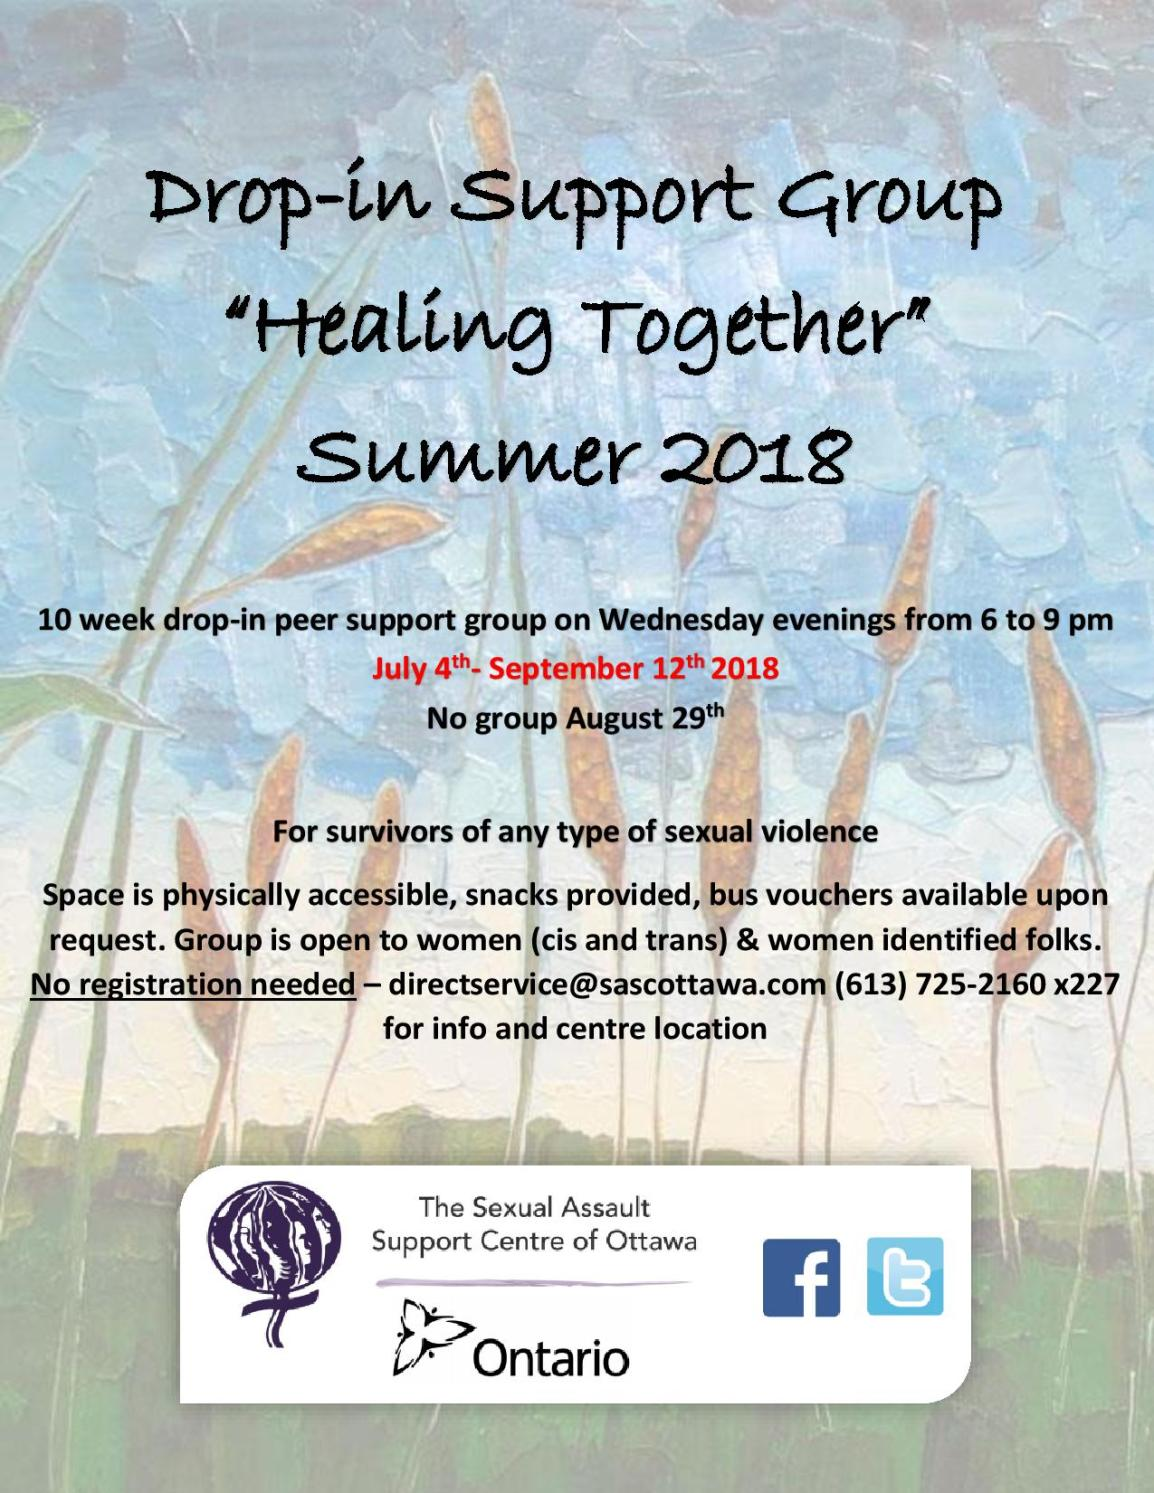 Drop-in group summer 2018 poster (1)-page-001.jpg